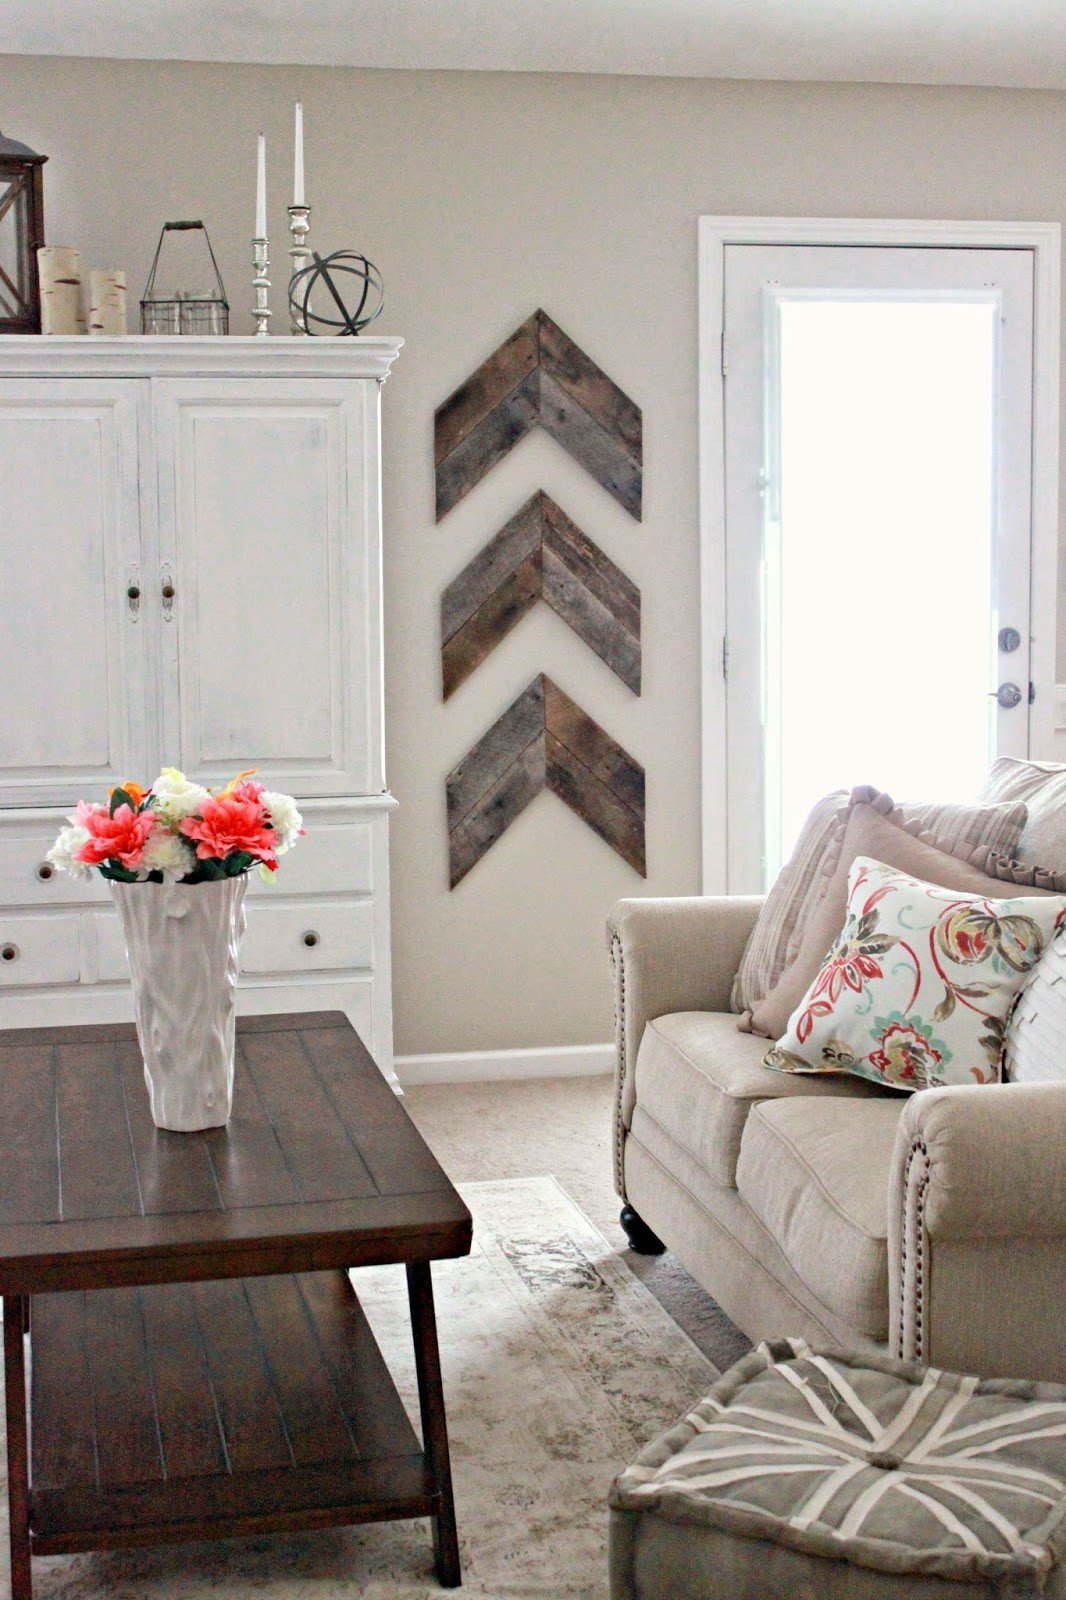 Living Room Wall Decorating Ideas Fresh 27 Best Rustic Wall Decor Ideas and Designs for 2019